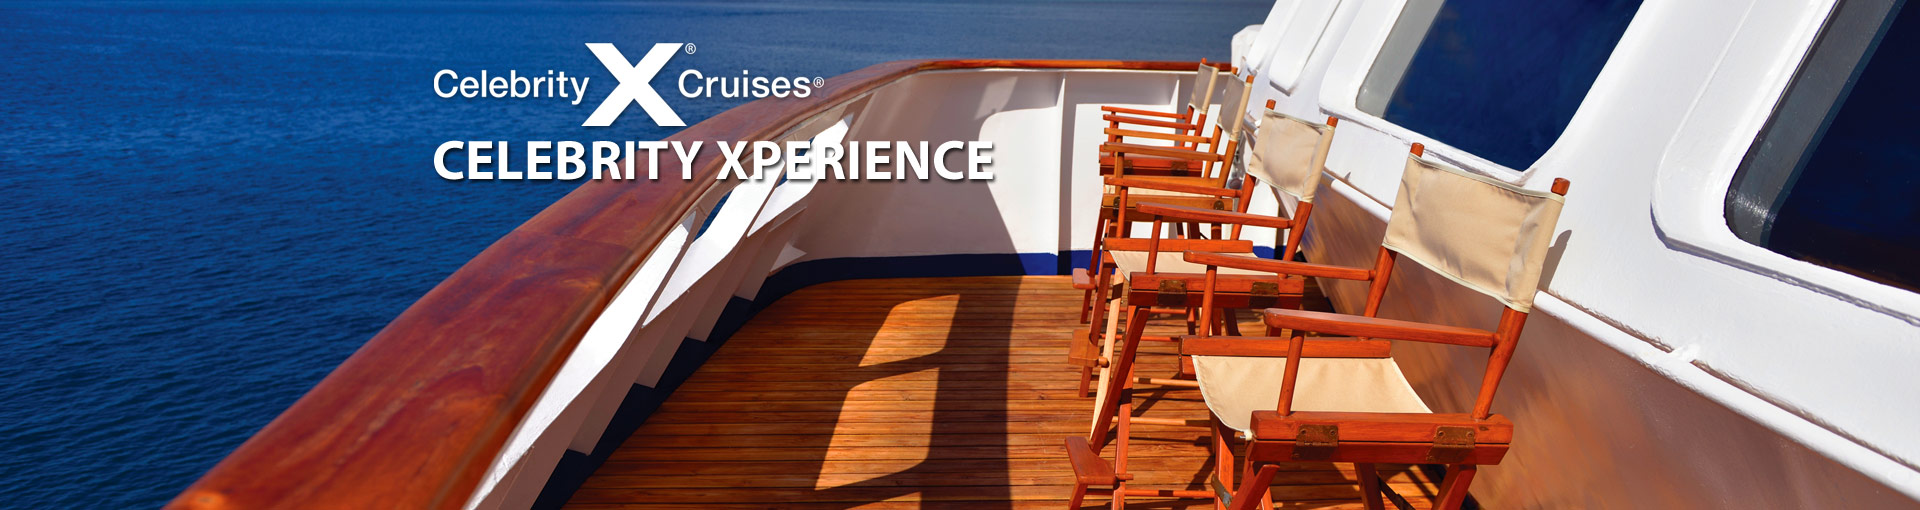 Celebrity Cruises Xperience Ship